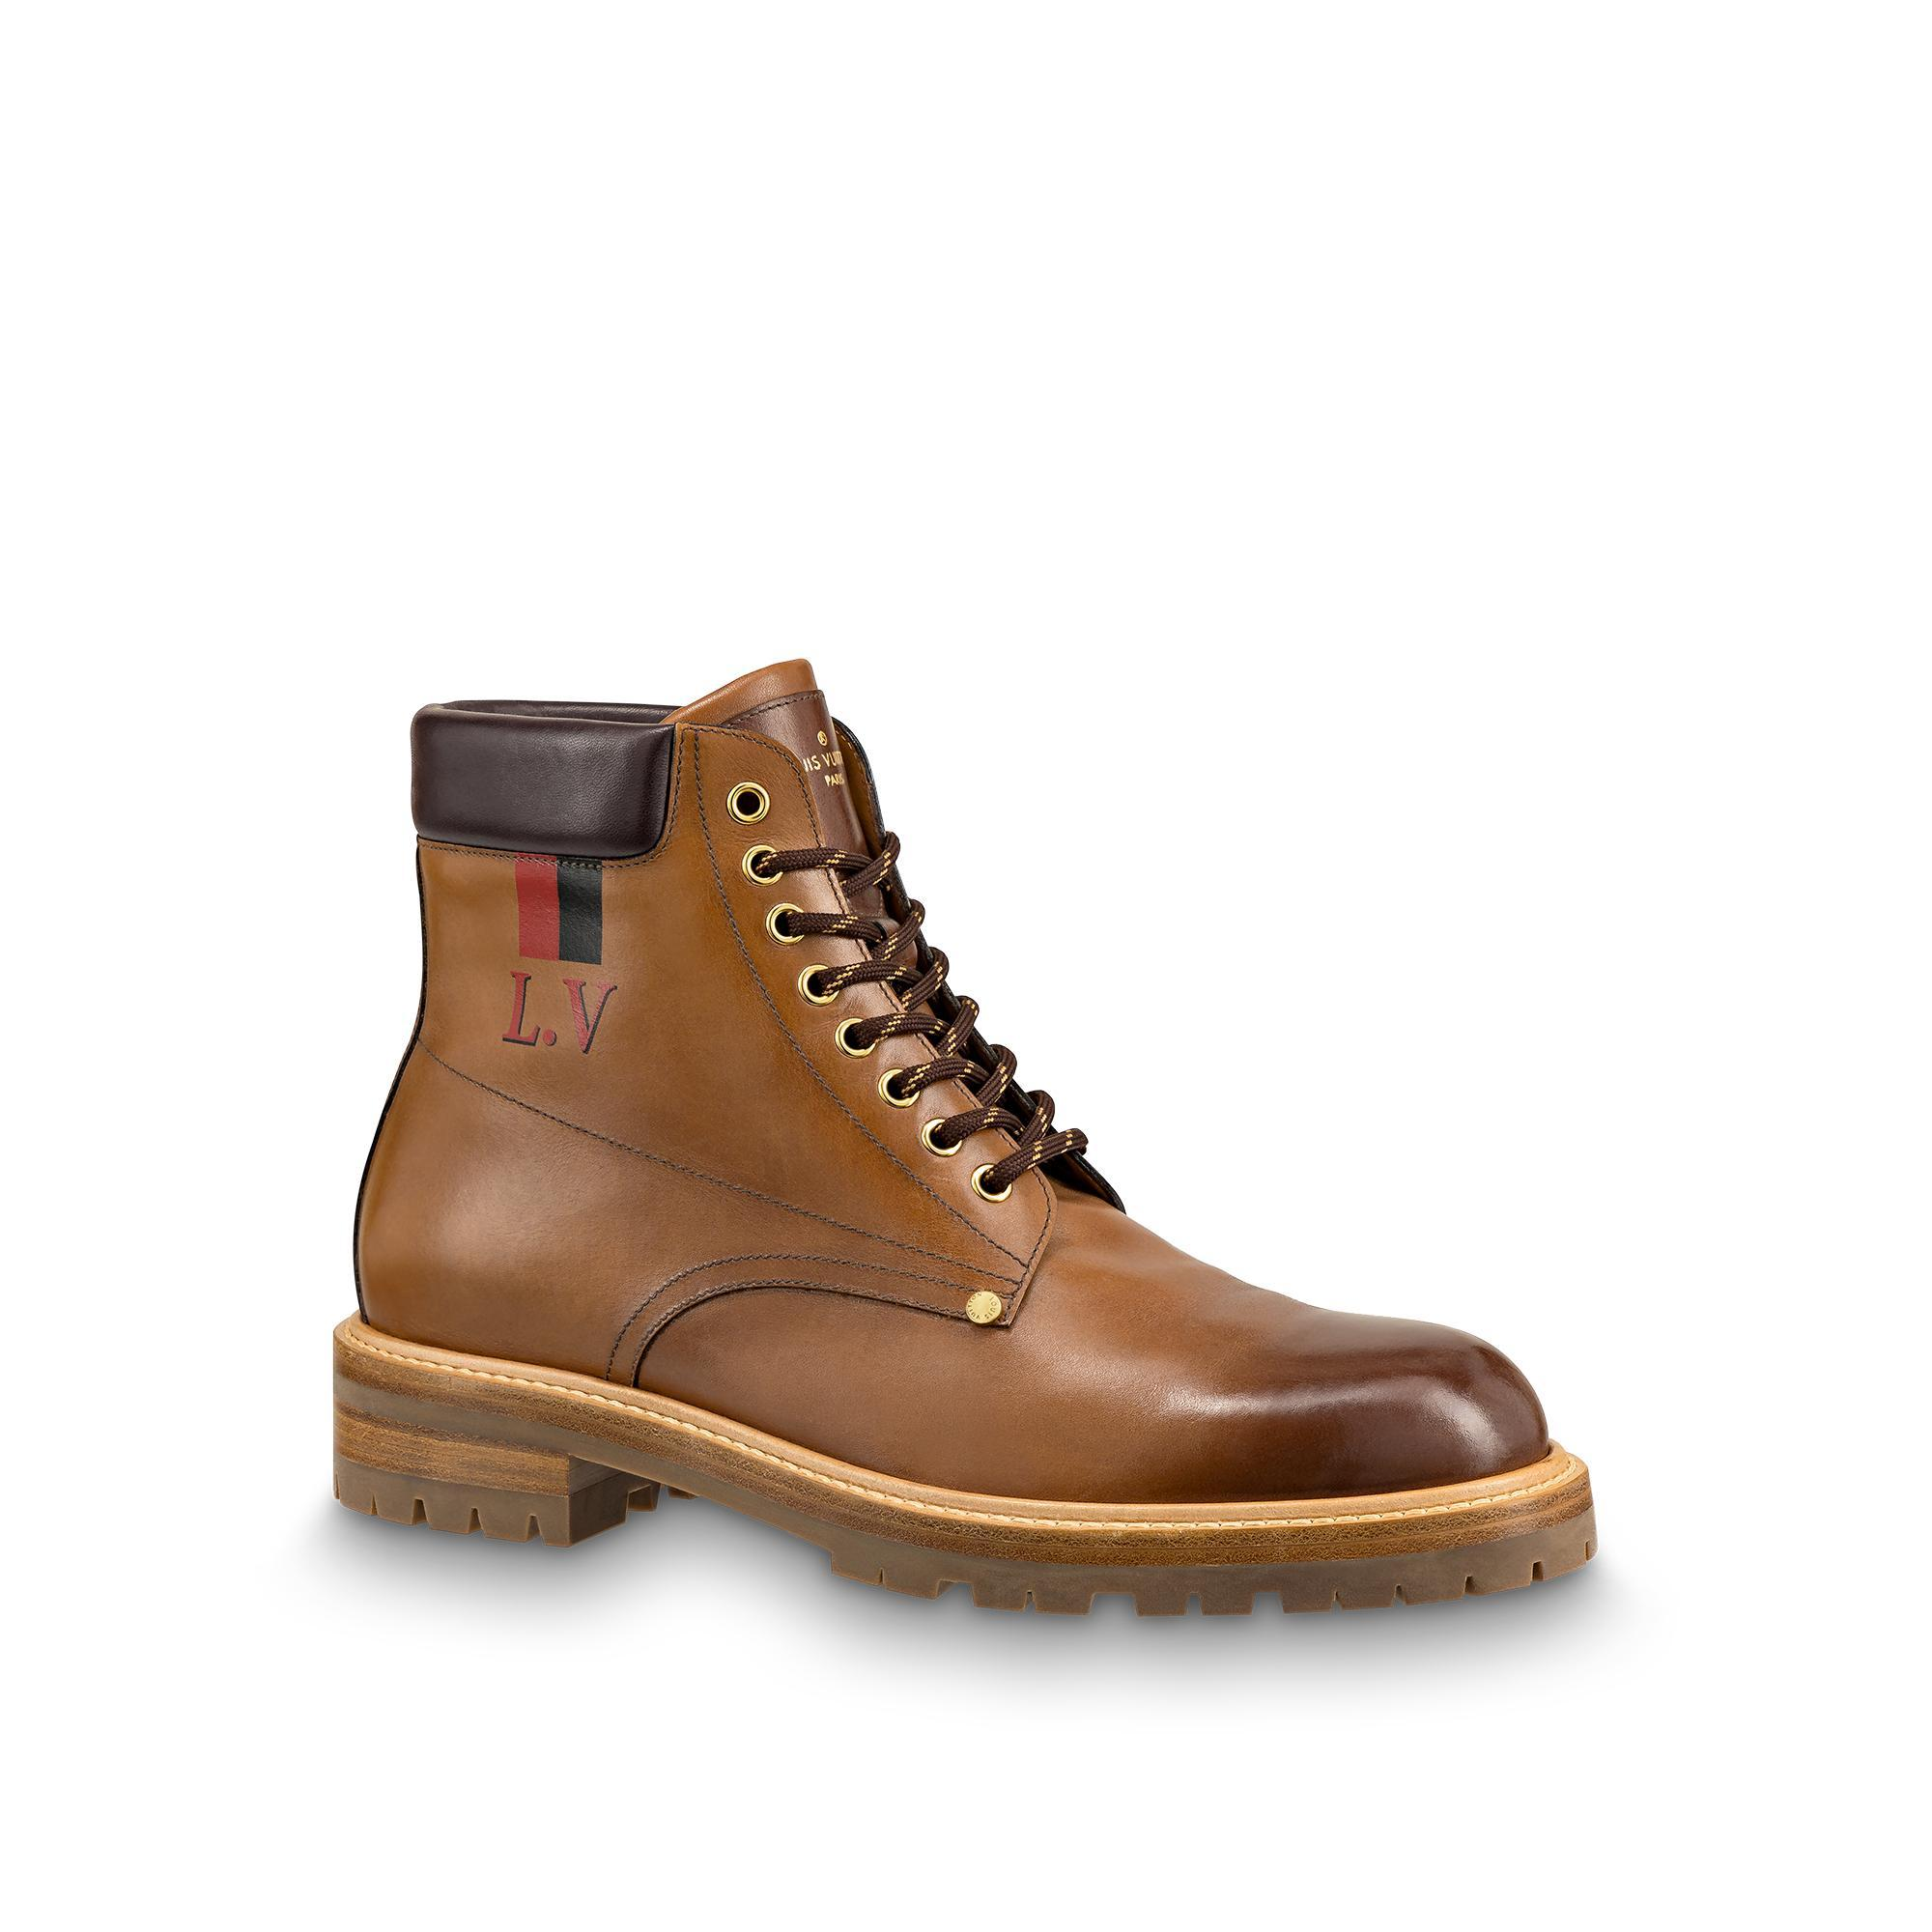 LOUIS VUITTON LV COUNTRY ANKLE BOOT